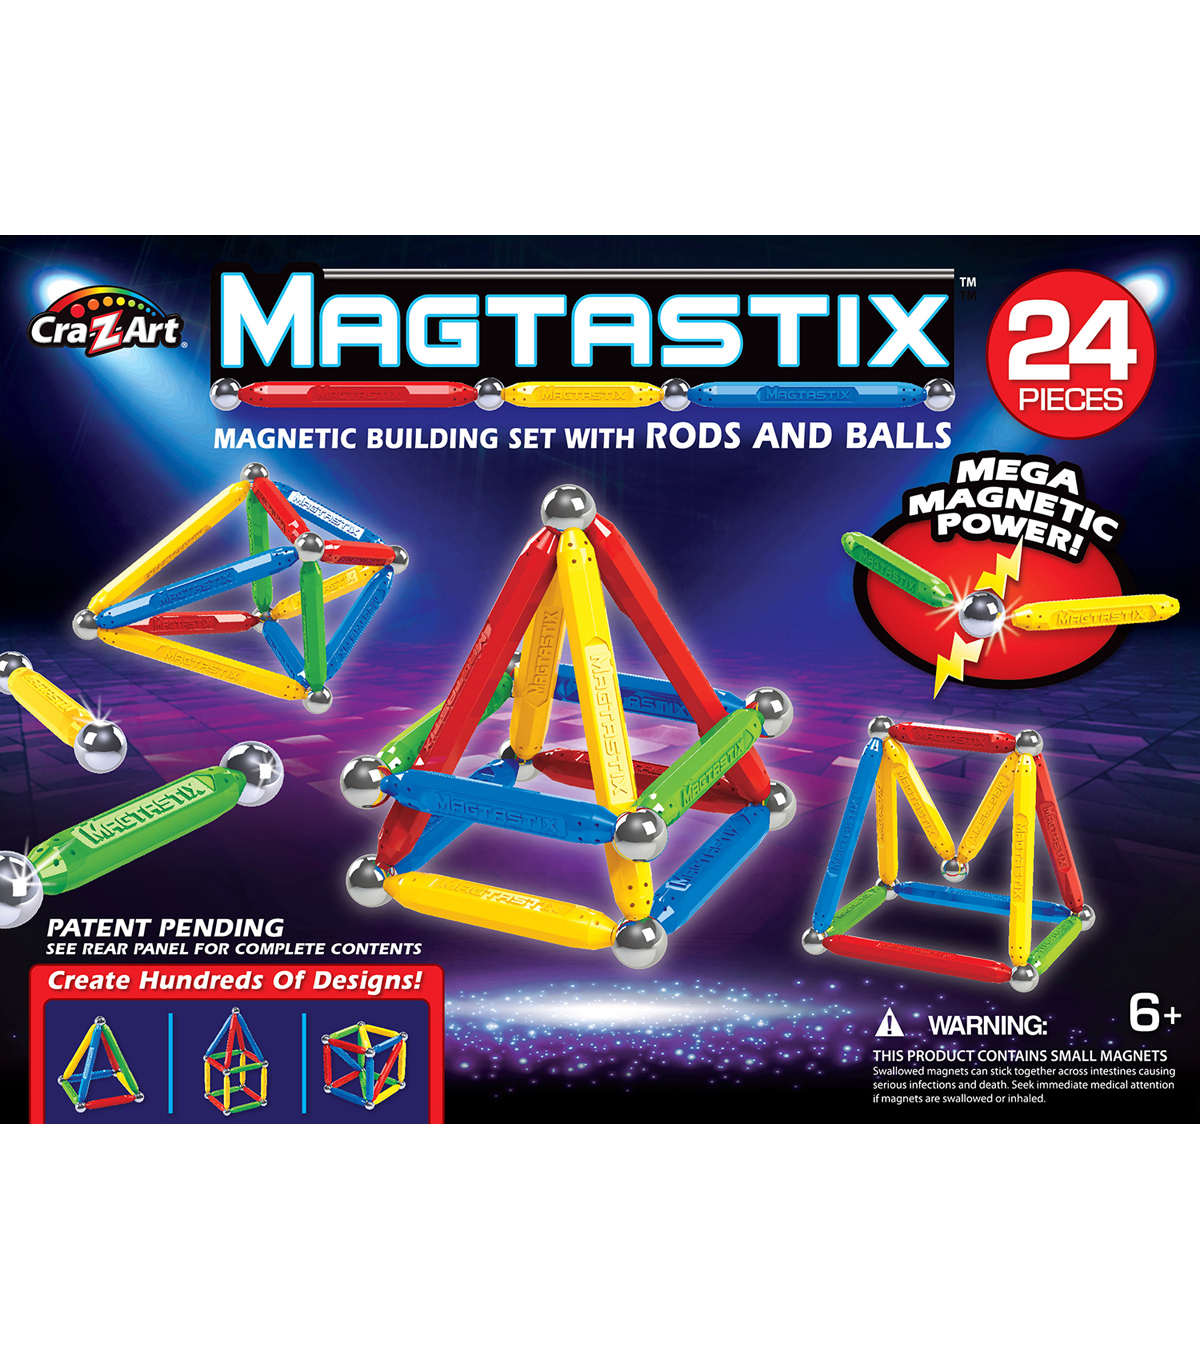 CraZart 24pc Magtastix Set